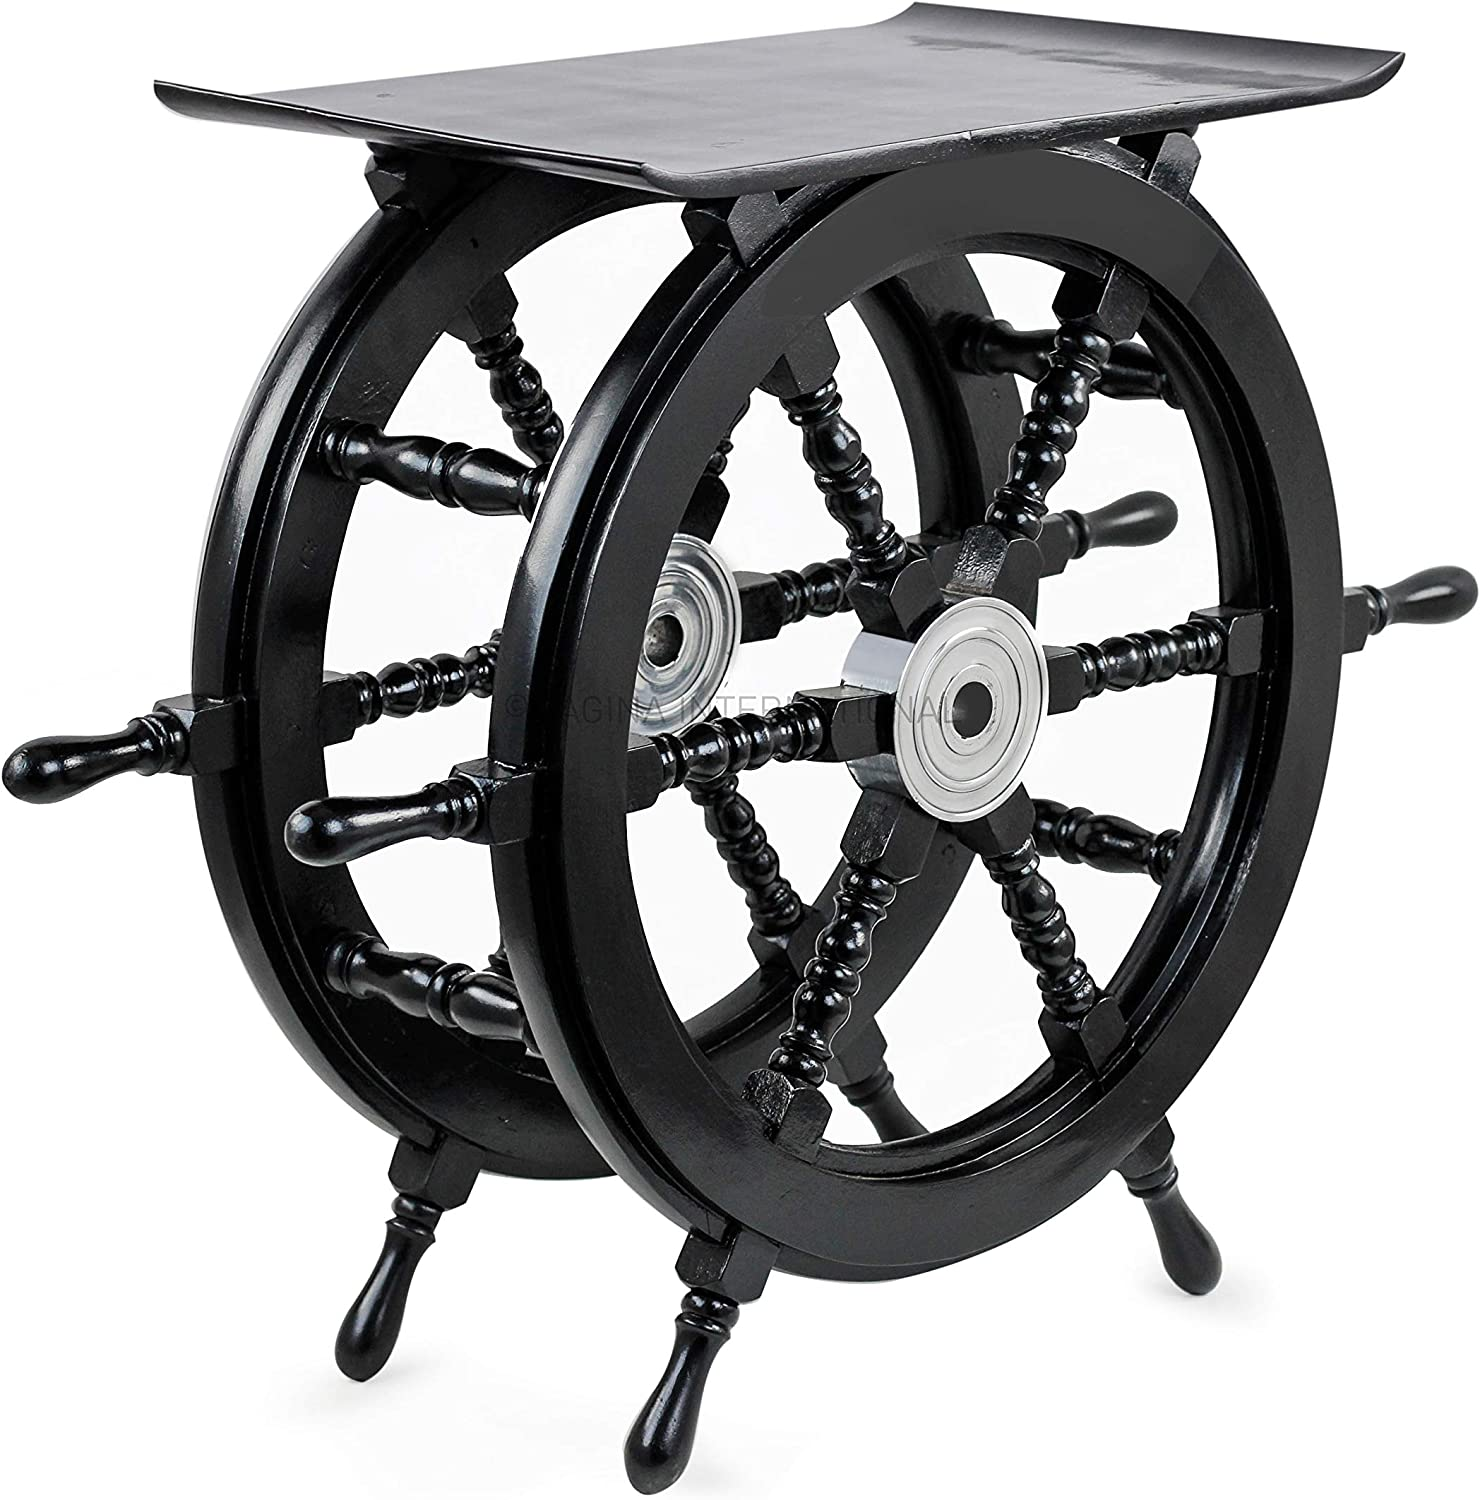 Nagina International Pirate's Black Nautical Handcrafted Wooden Stool | Home Decor Ship Wheel Table Furniture (Medium)